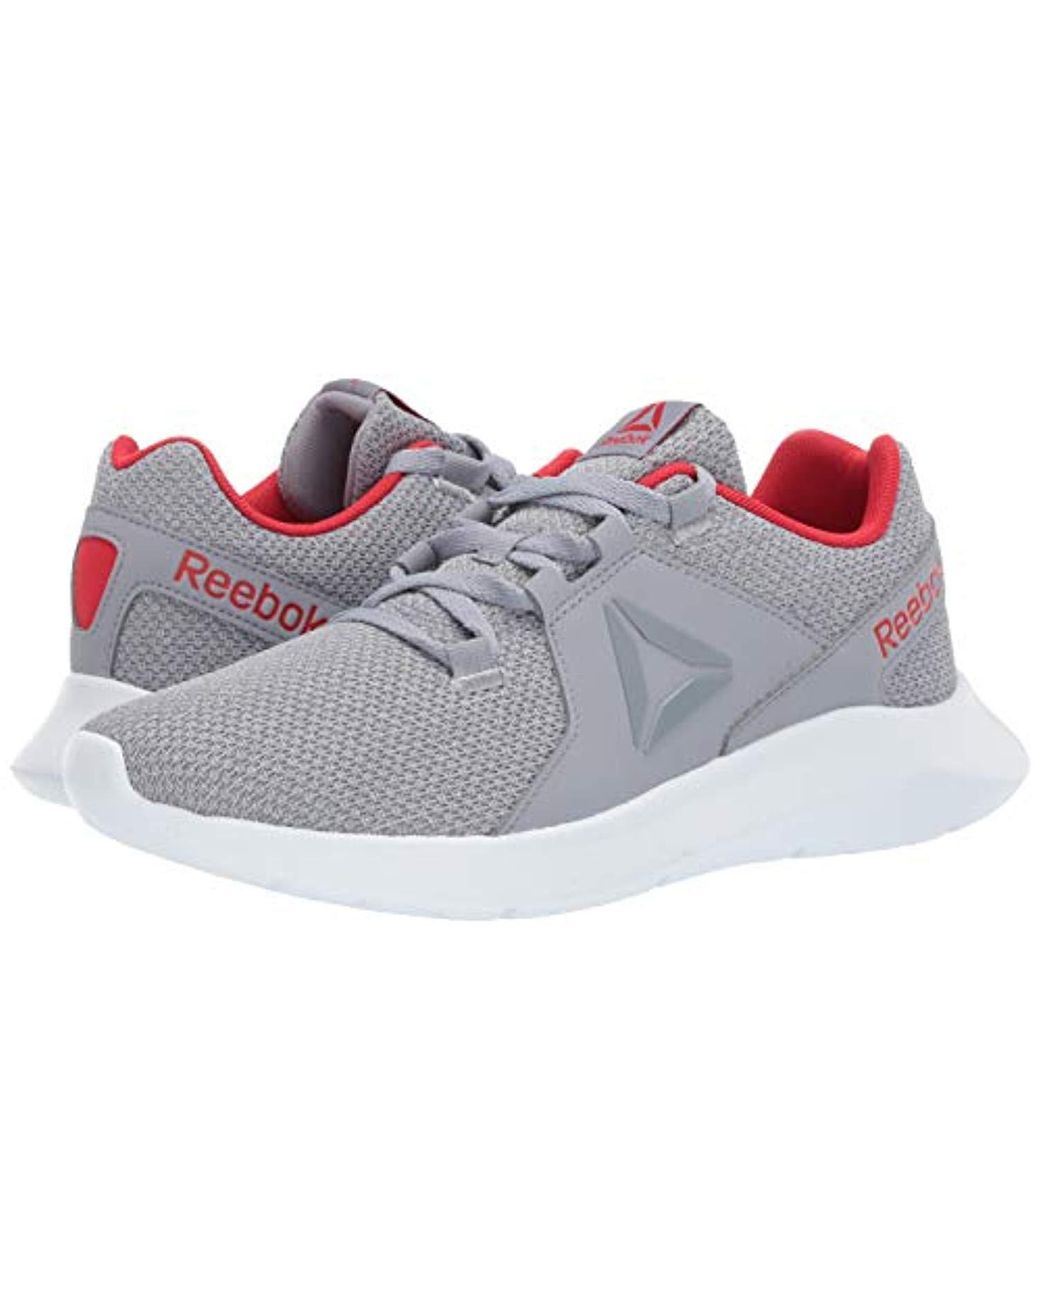 bc67379be5a1 Lyst - Reebok Energylux Running Shoe for Men